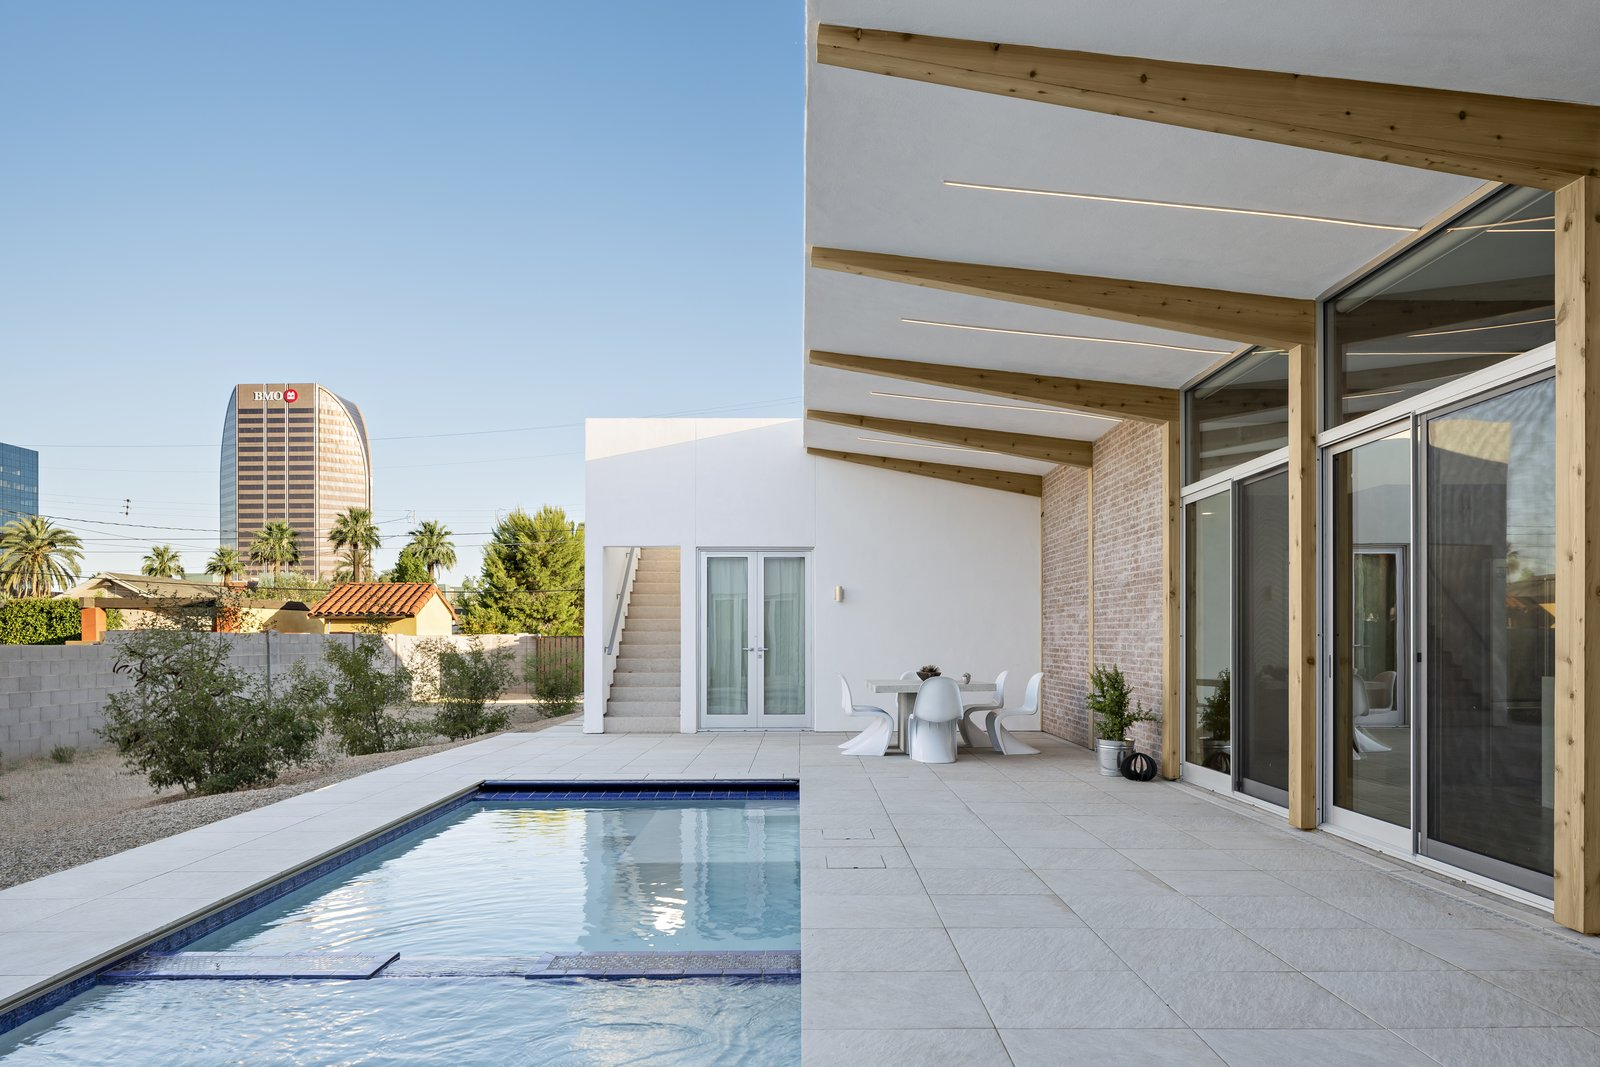 Outdoor, Side Yard, Desert, Trees, Small Pools, Tubs, Shower, Hardscapes, Decomposed Granite Patio, Porch, Deck, and Pavers Patio, Porch, Deck Cantilevered wood beams angle up towards the growing city skyline. On the left, a sloped area captures the monsoon rainfall and the Mulga Acacia trees will grow to the height of the home over time to provide more shade and privacy.  Sol House by The Ranch Mine